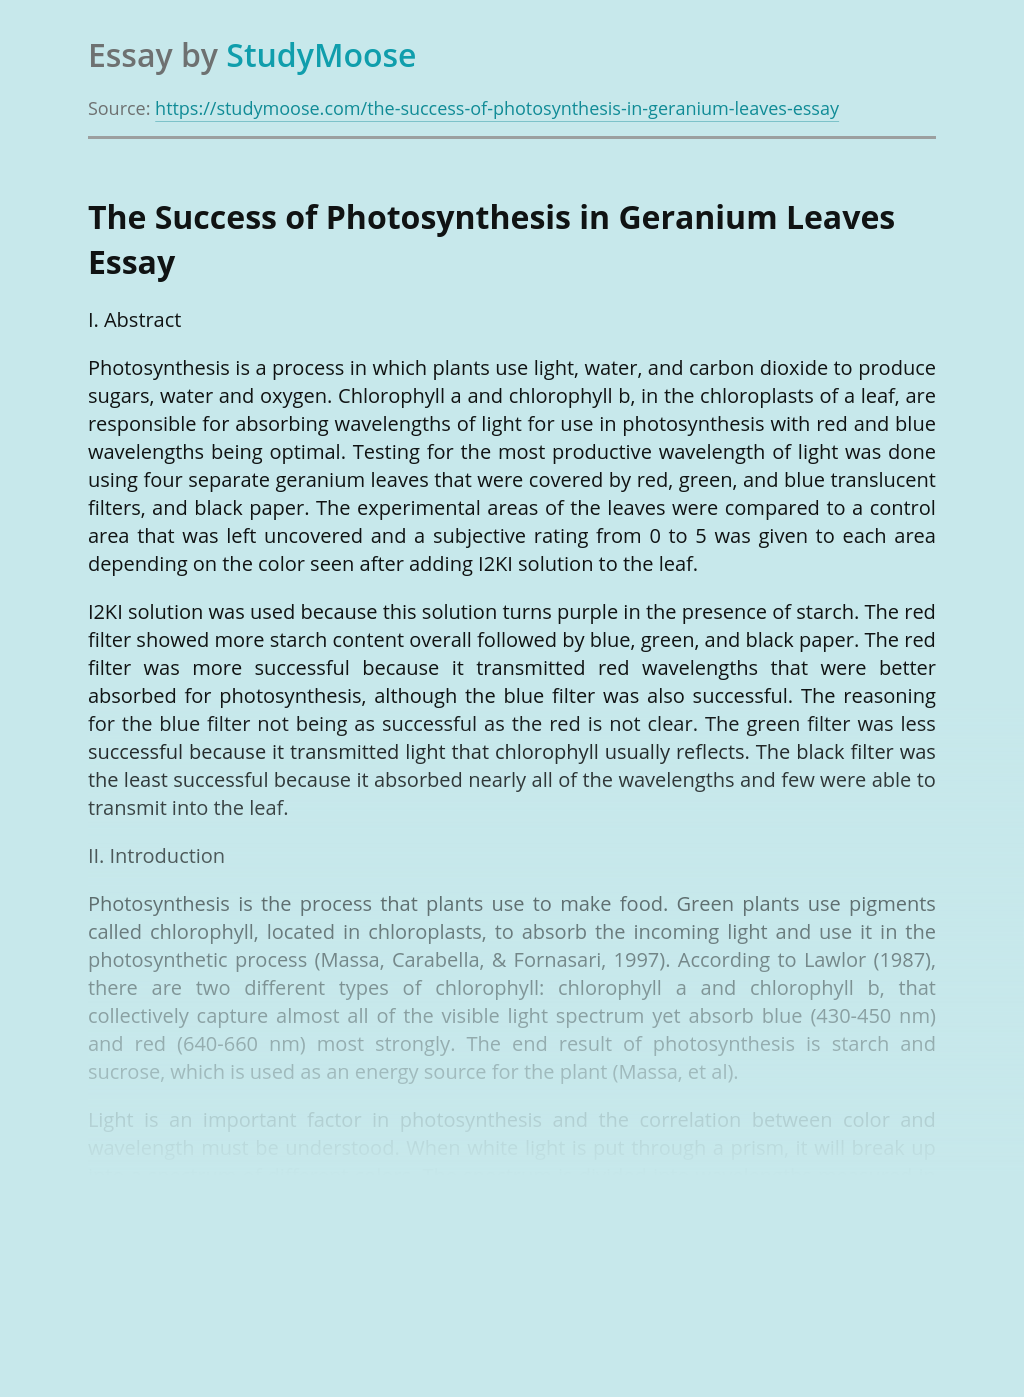 The Success of Photosynthesis in Geranium Leaves